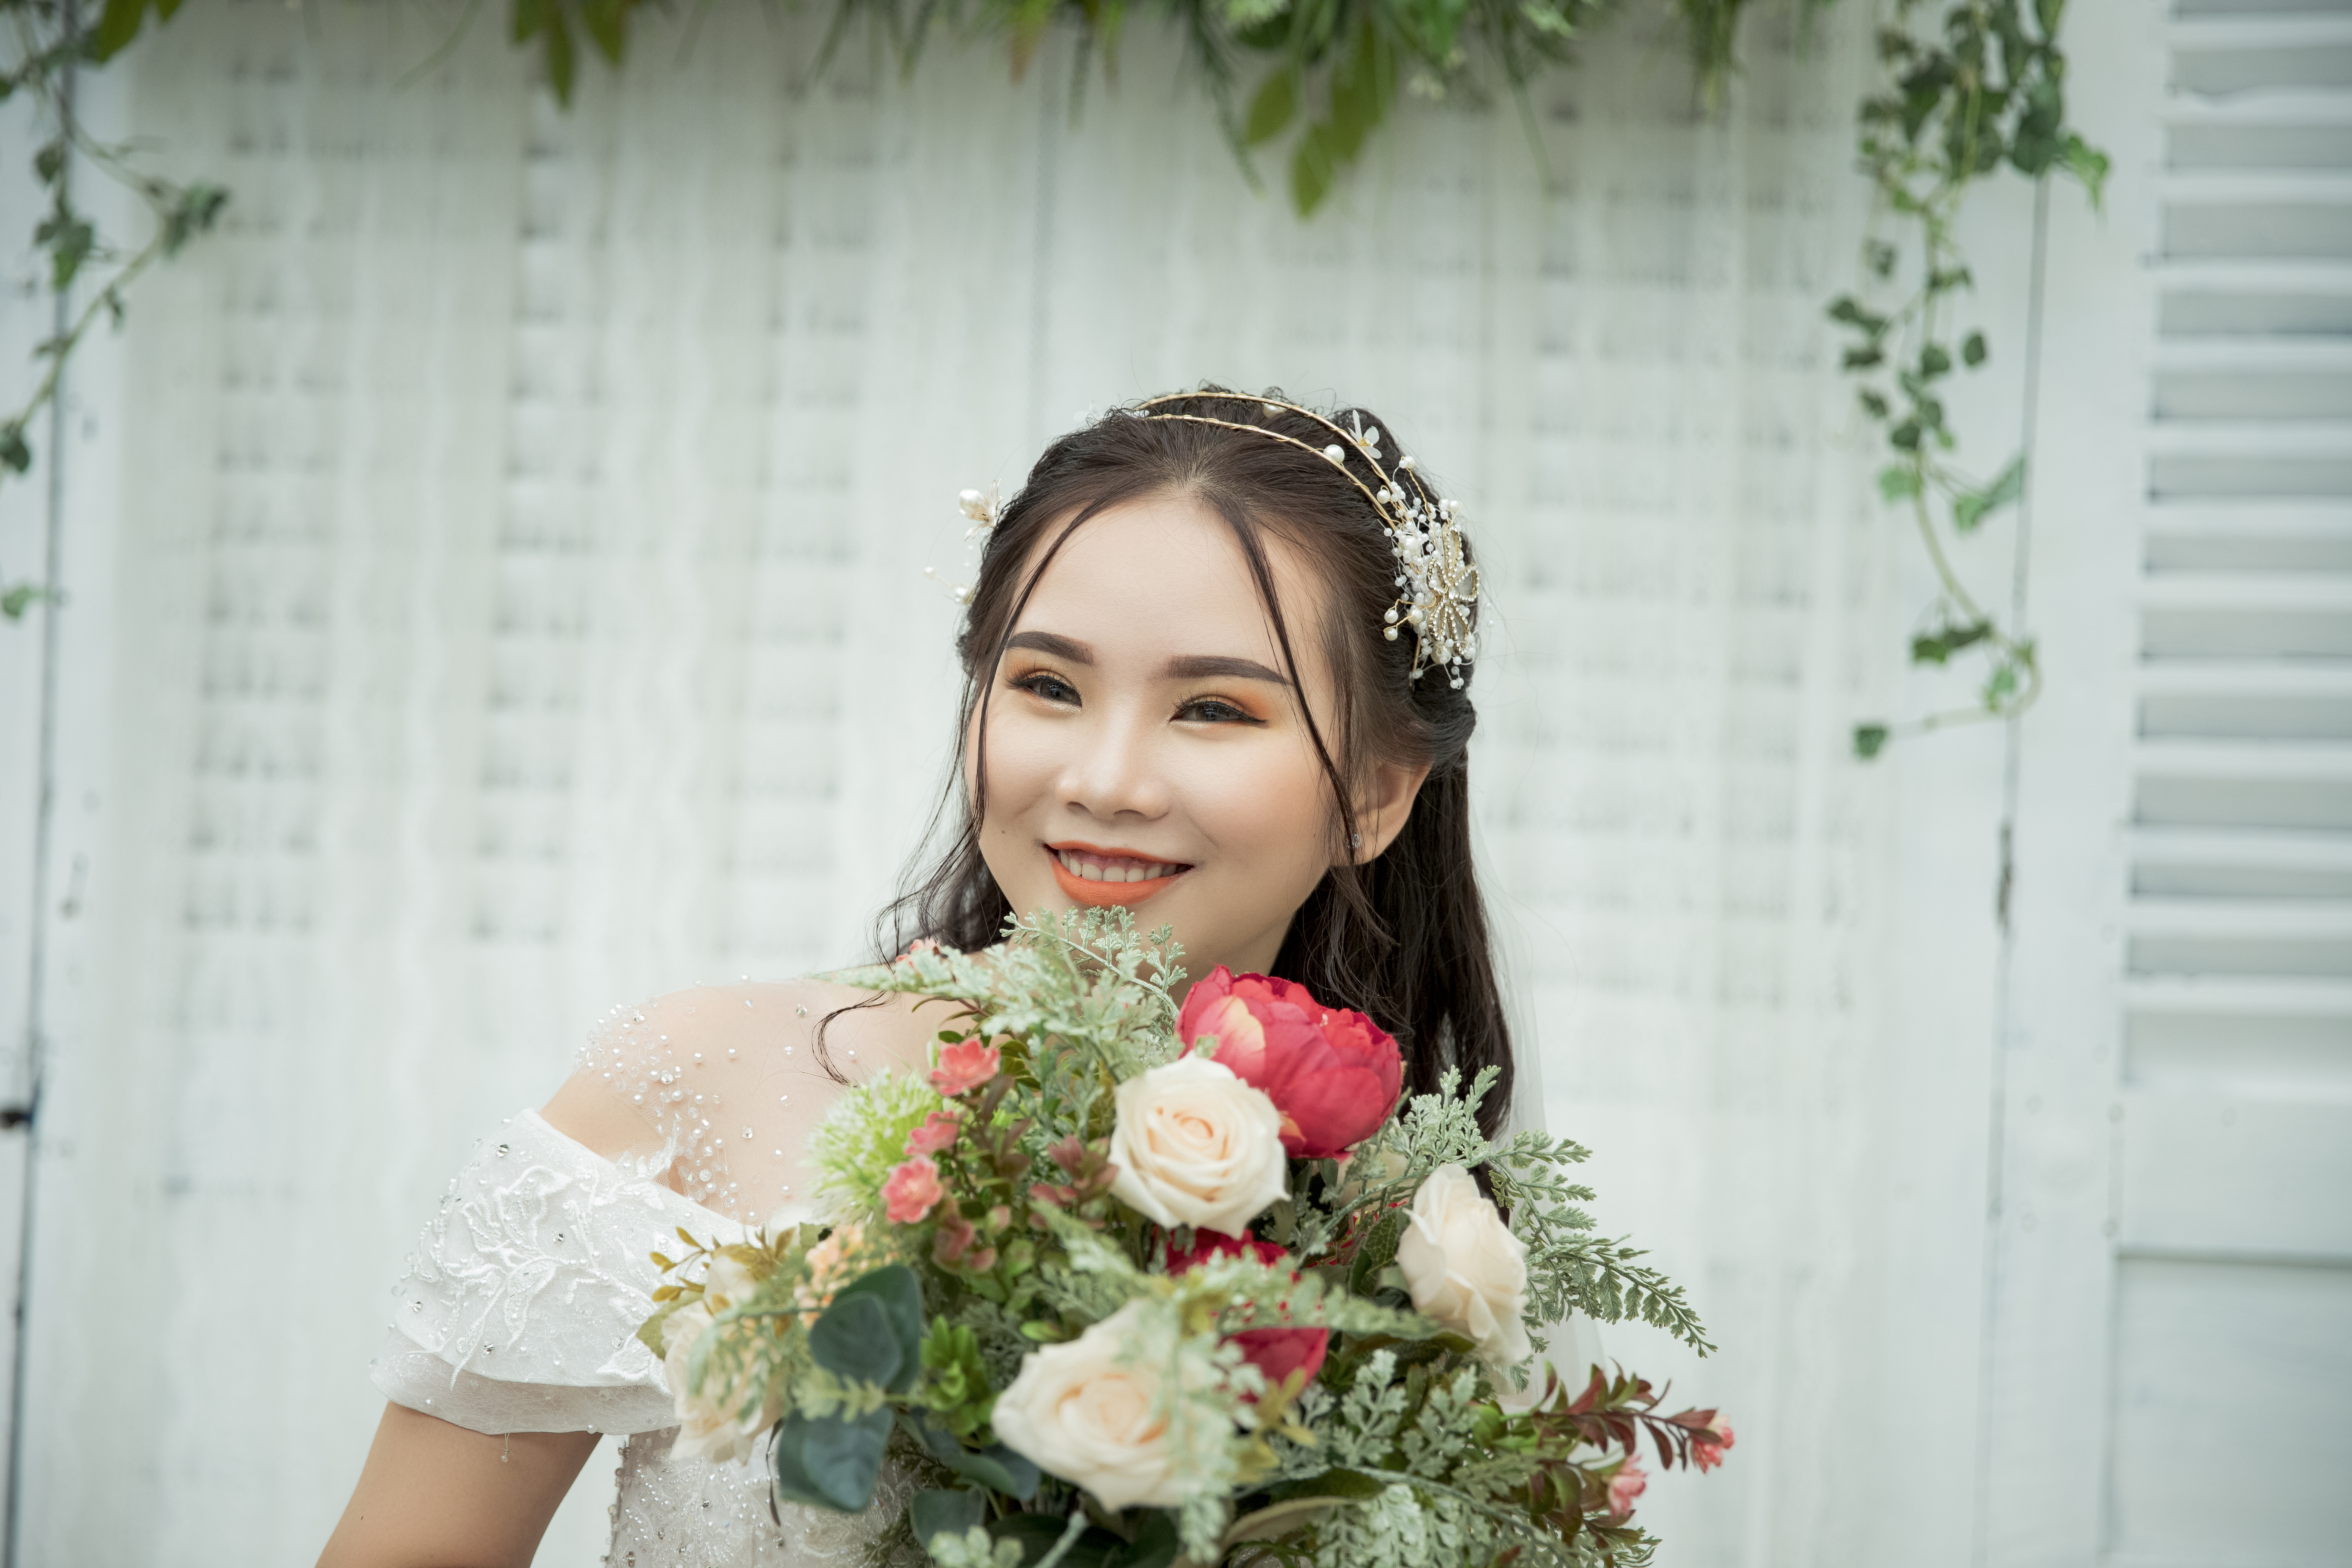 Photo Of Bride Holding Bouquet